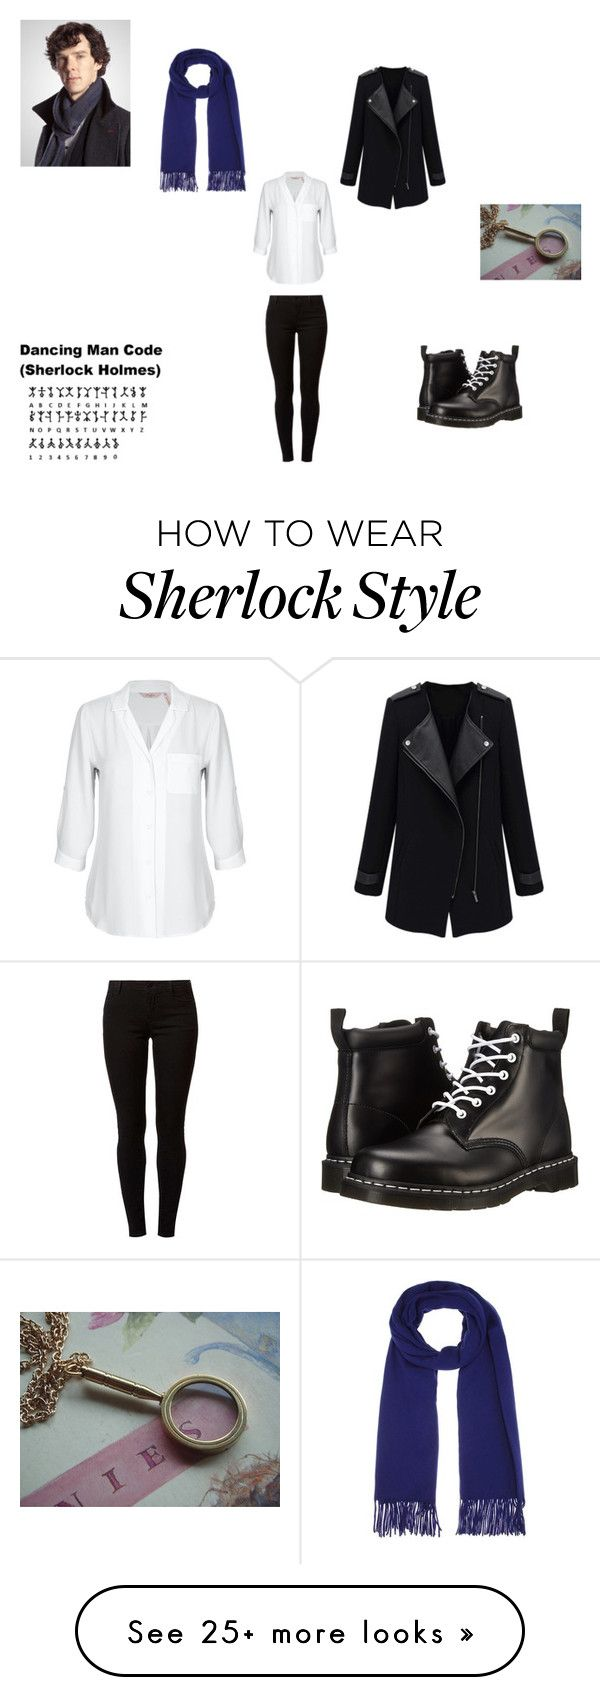 """Female Sherlock Holmes"" by katmccreery on Polyvore featuring Acne Studios, Dorothy Perkins and Dr. Martens"